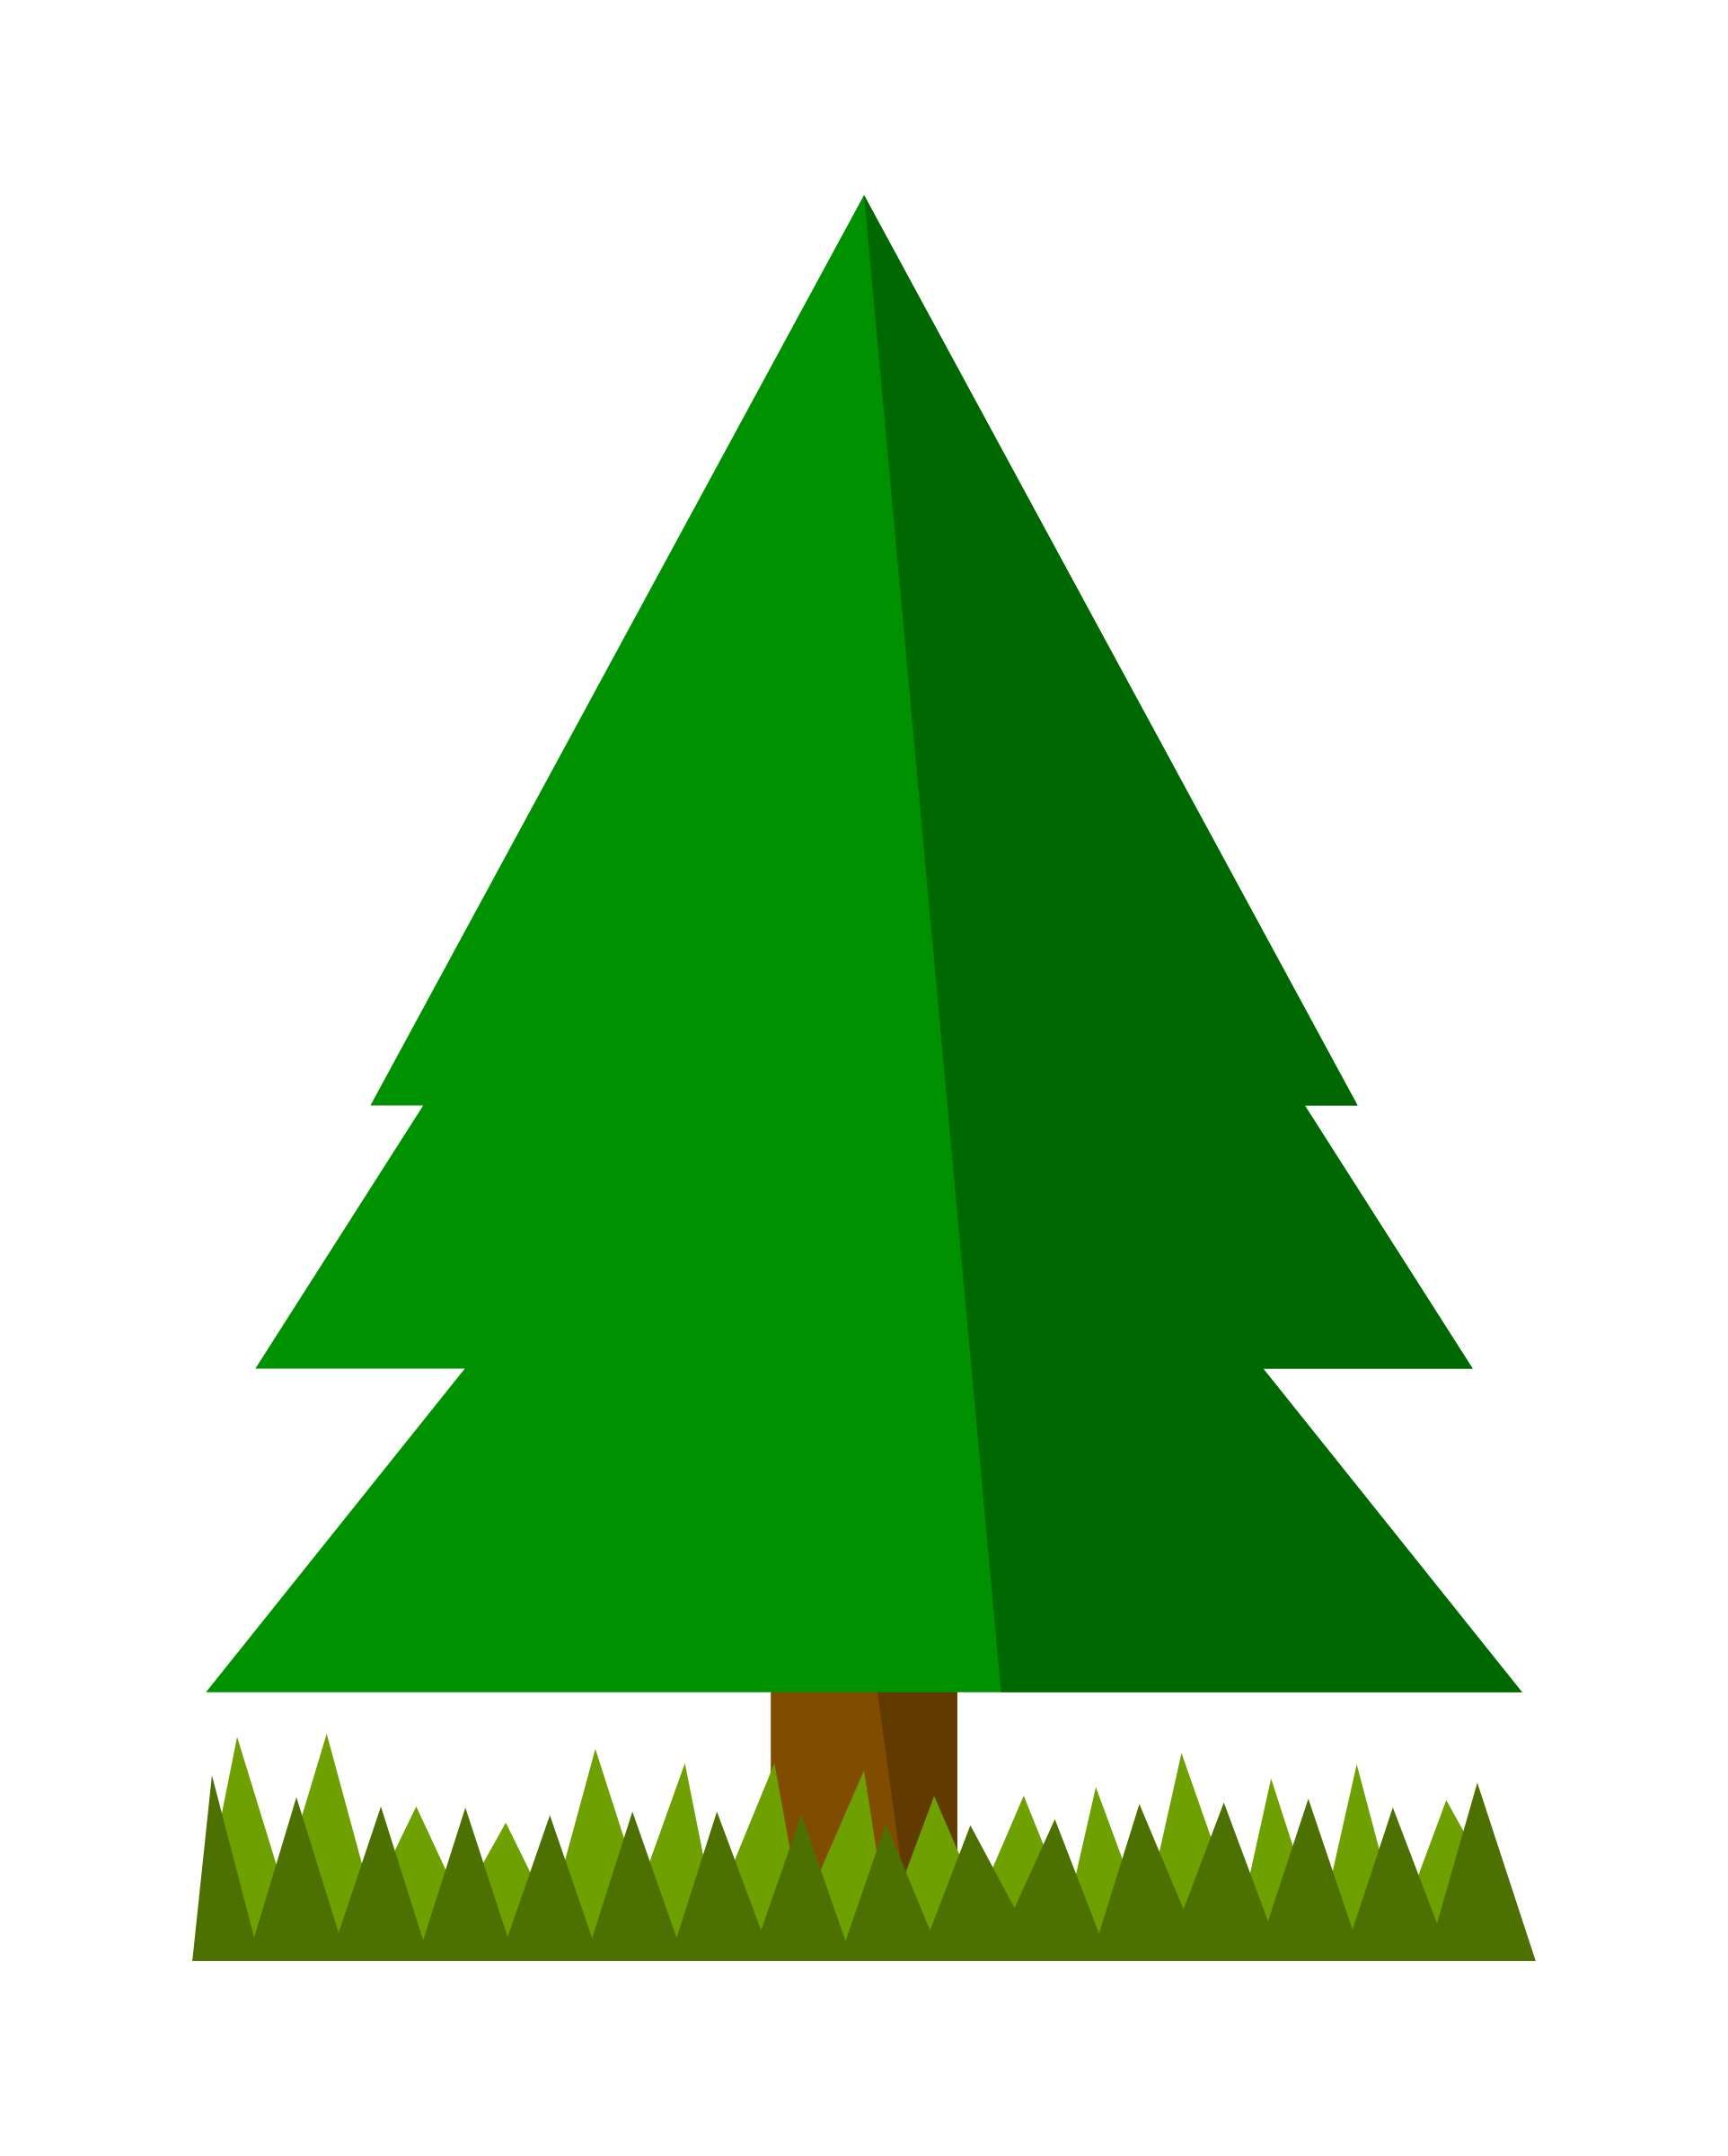 Tree clipart grass. Spruce with big image